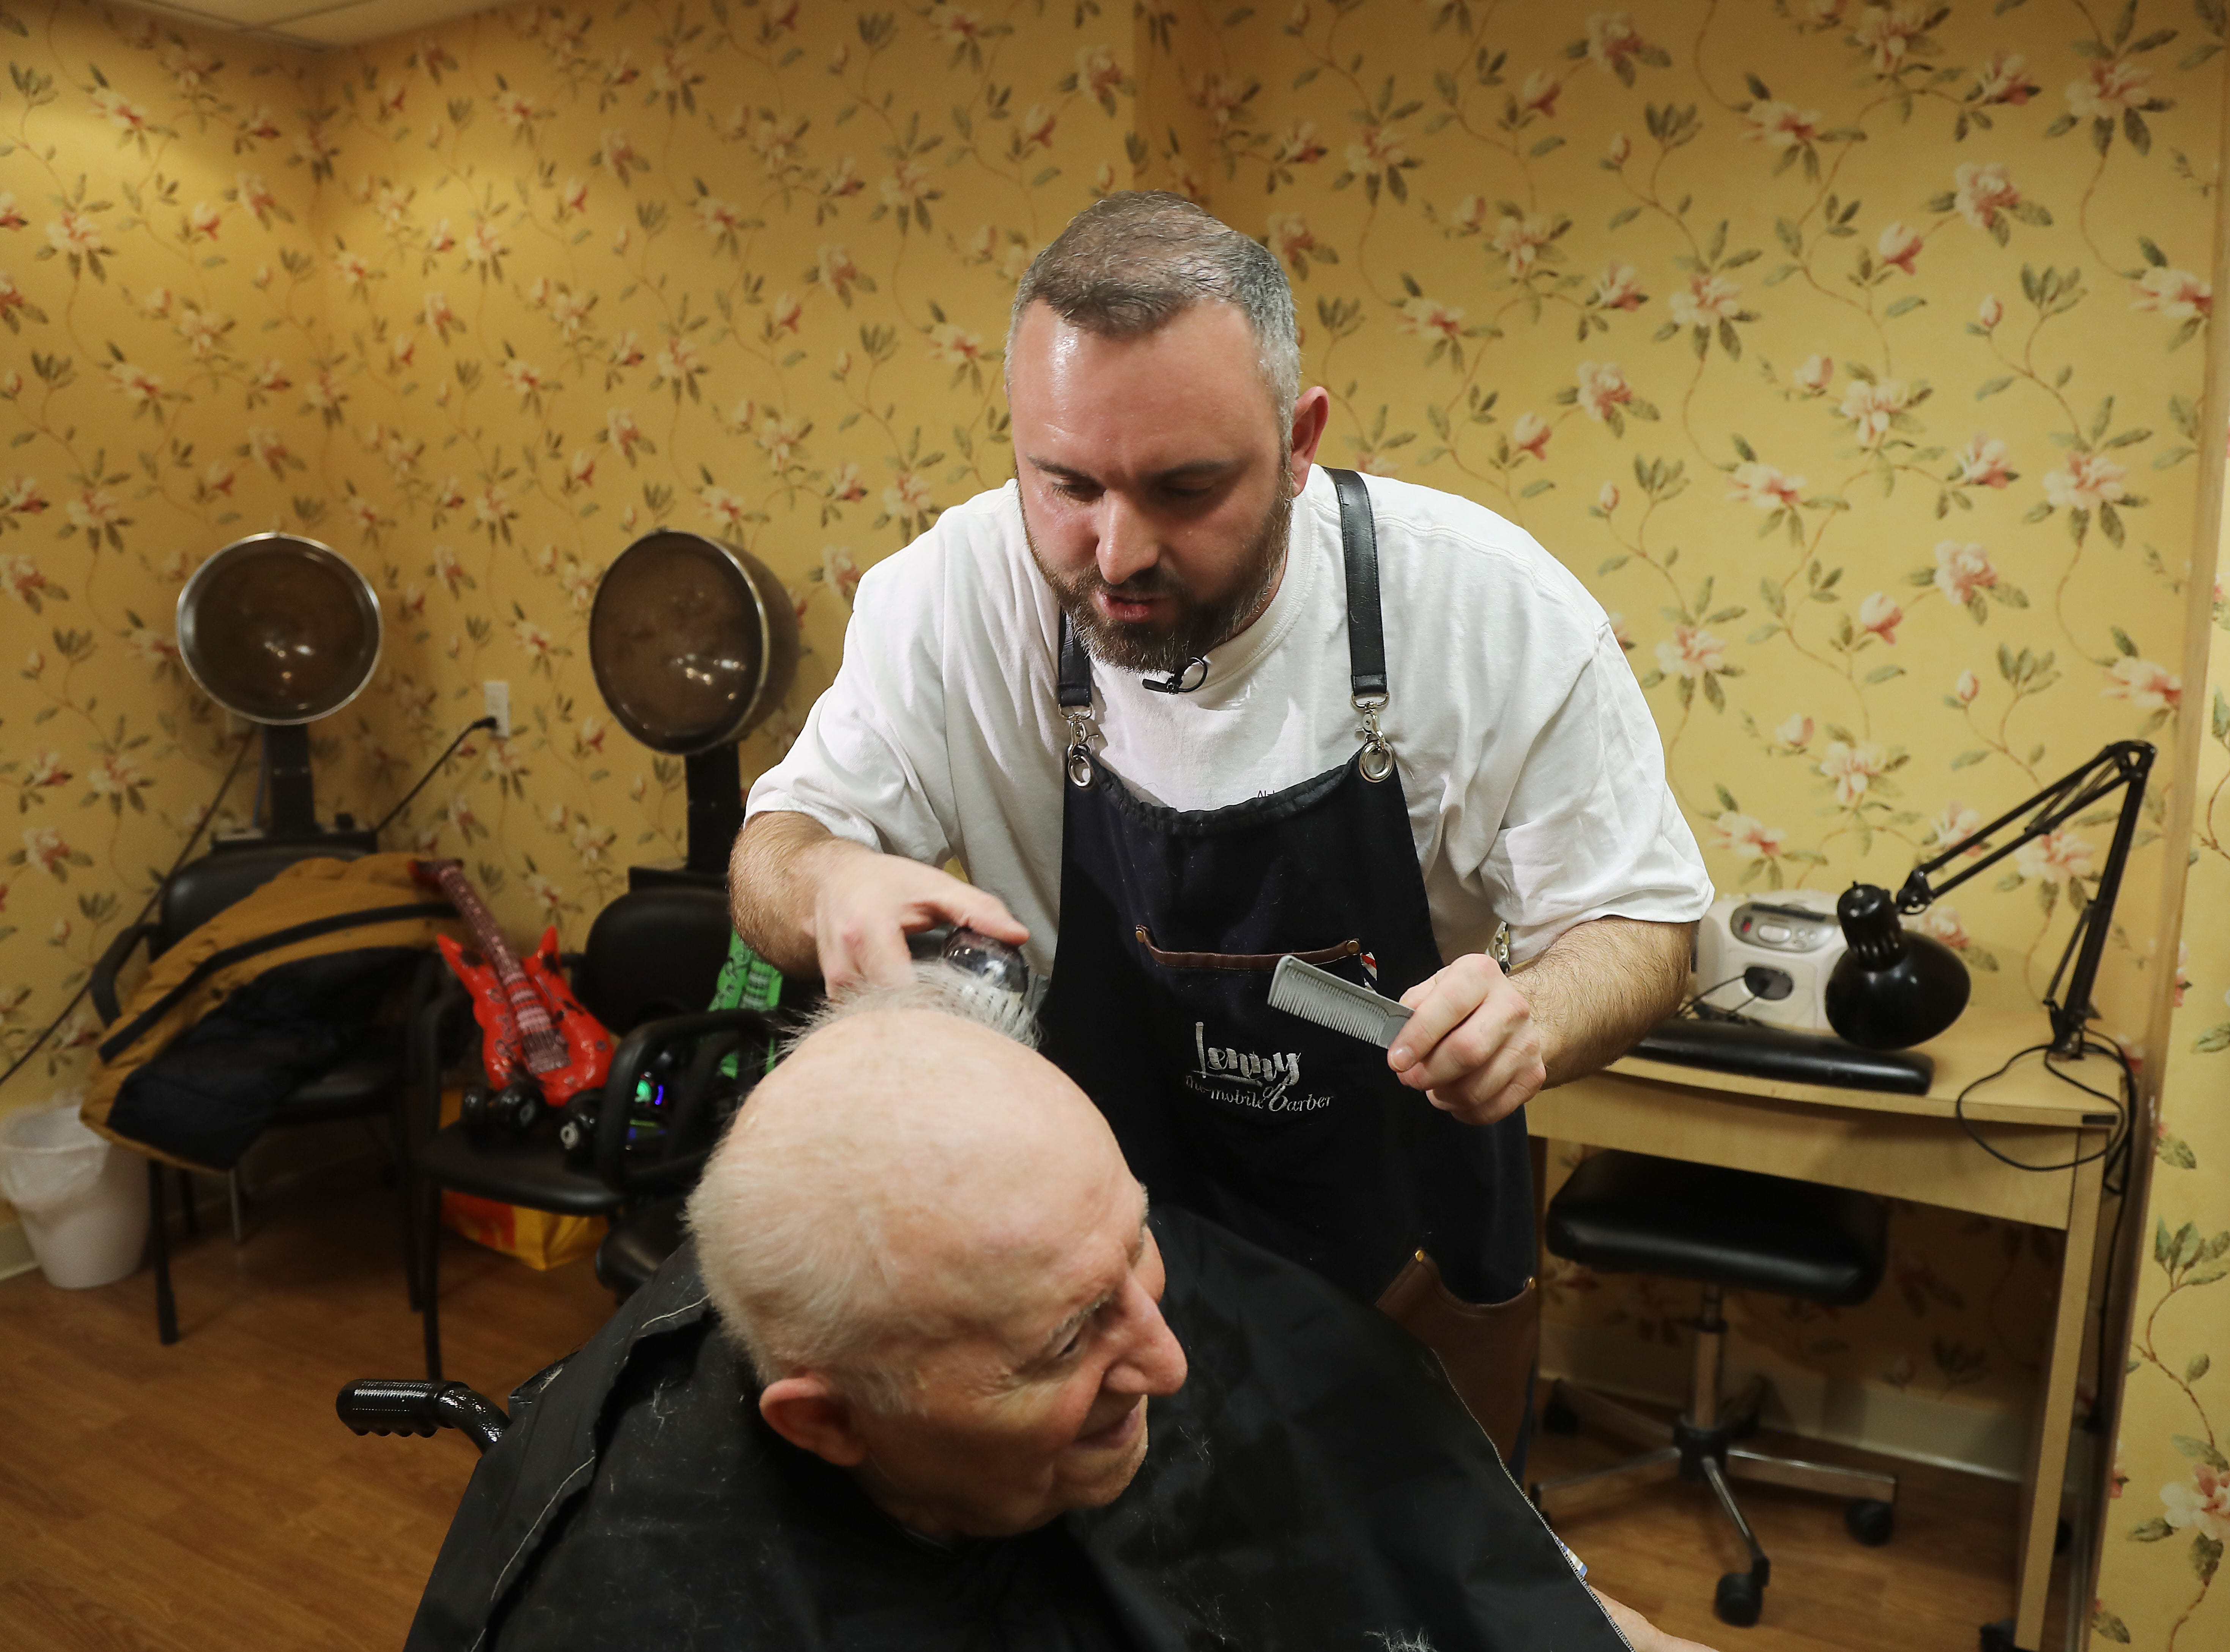 Lenny White, a barber from Northern Ireland, gives a complimentary haircut to Constantine Soukas 83 a resident of The Chelsea of Montville, an assisted living facility on January 3, 2019.